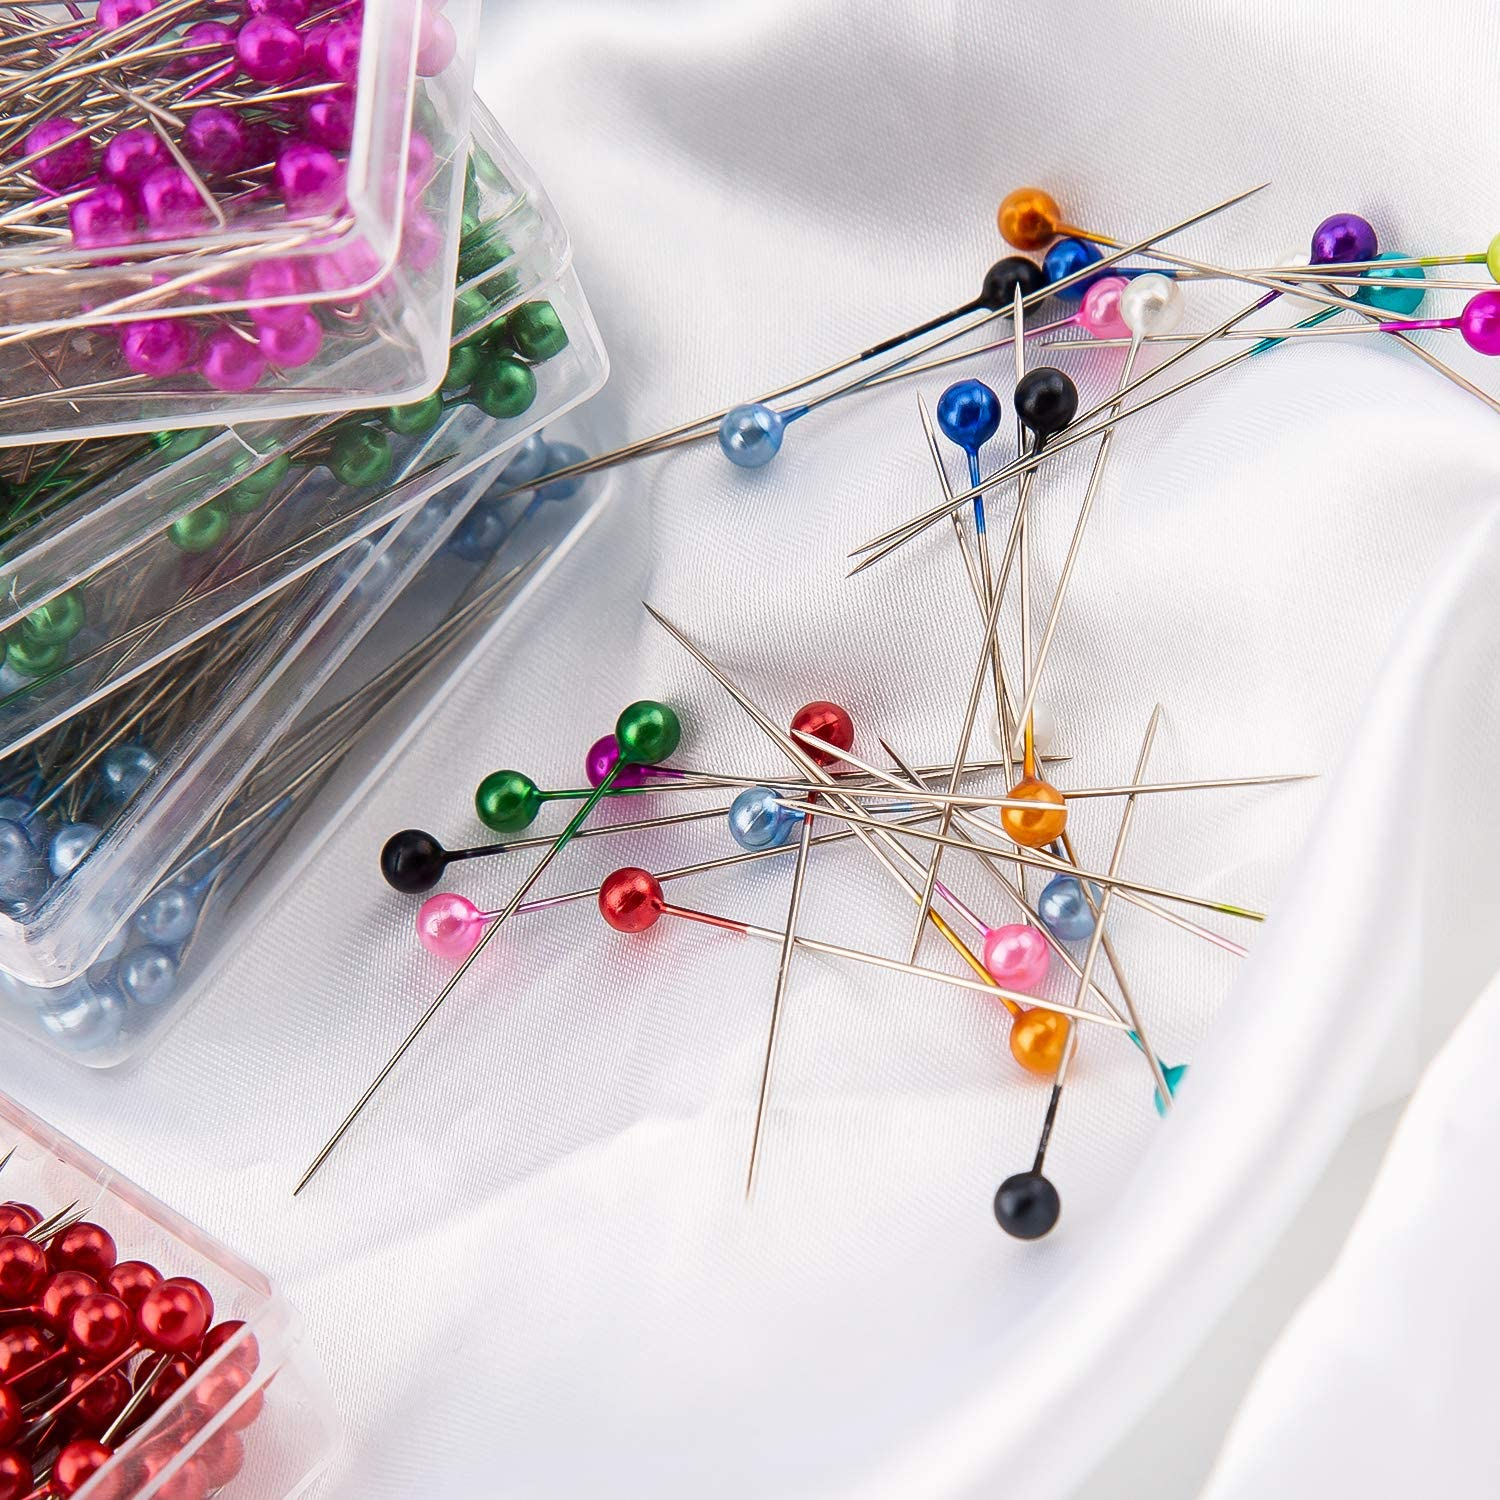 AIEX 1200 Pieces Sewing Pins Multicolor Head Pins Straight for Dressmaker Jewelry Decoration Sewing Projects 1.57inch